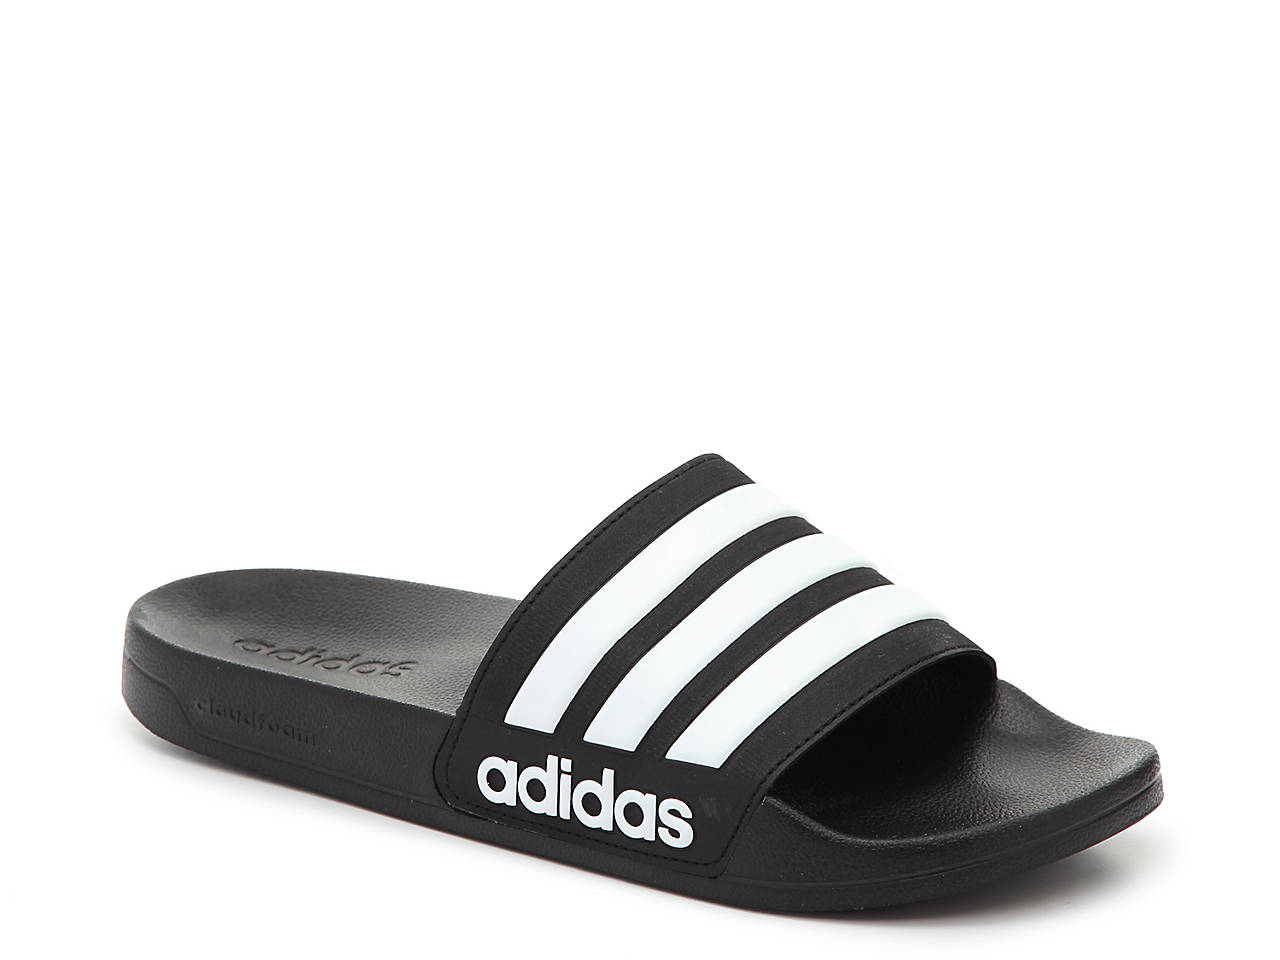 367ac11479036 adidas Adilette Shower Slide Sandal - Men s Men s Shoes